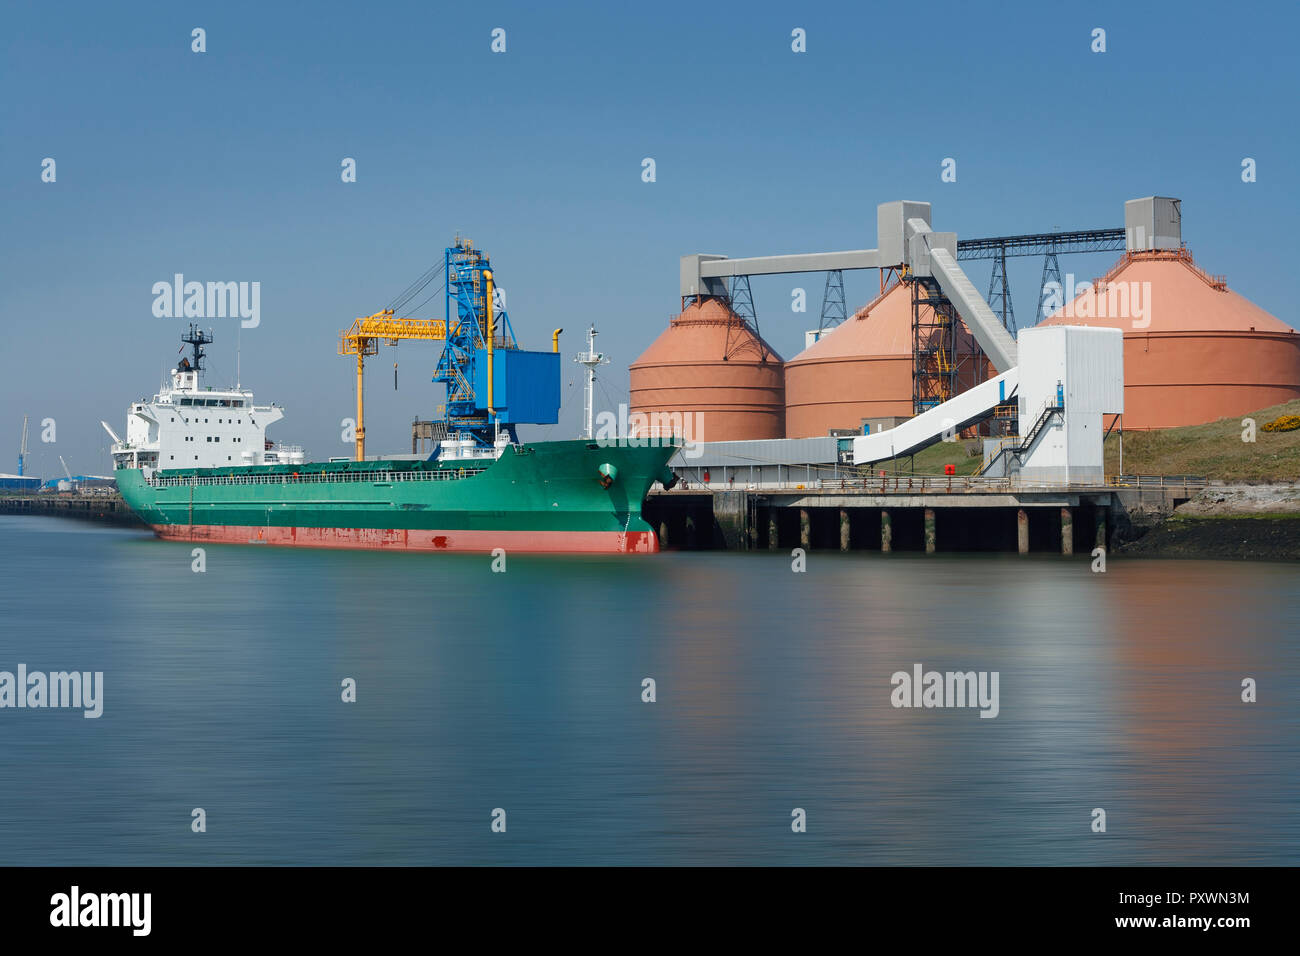 Unloading of a cargo ship in an industrial port, on a summers day with blue skies, and silos in background. - Stock Image